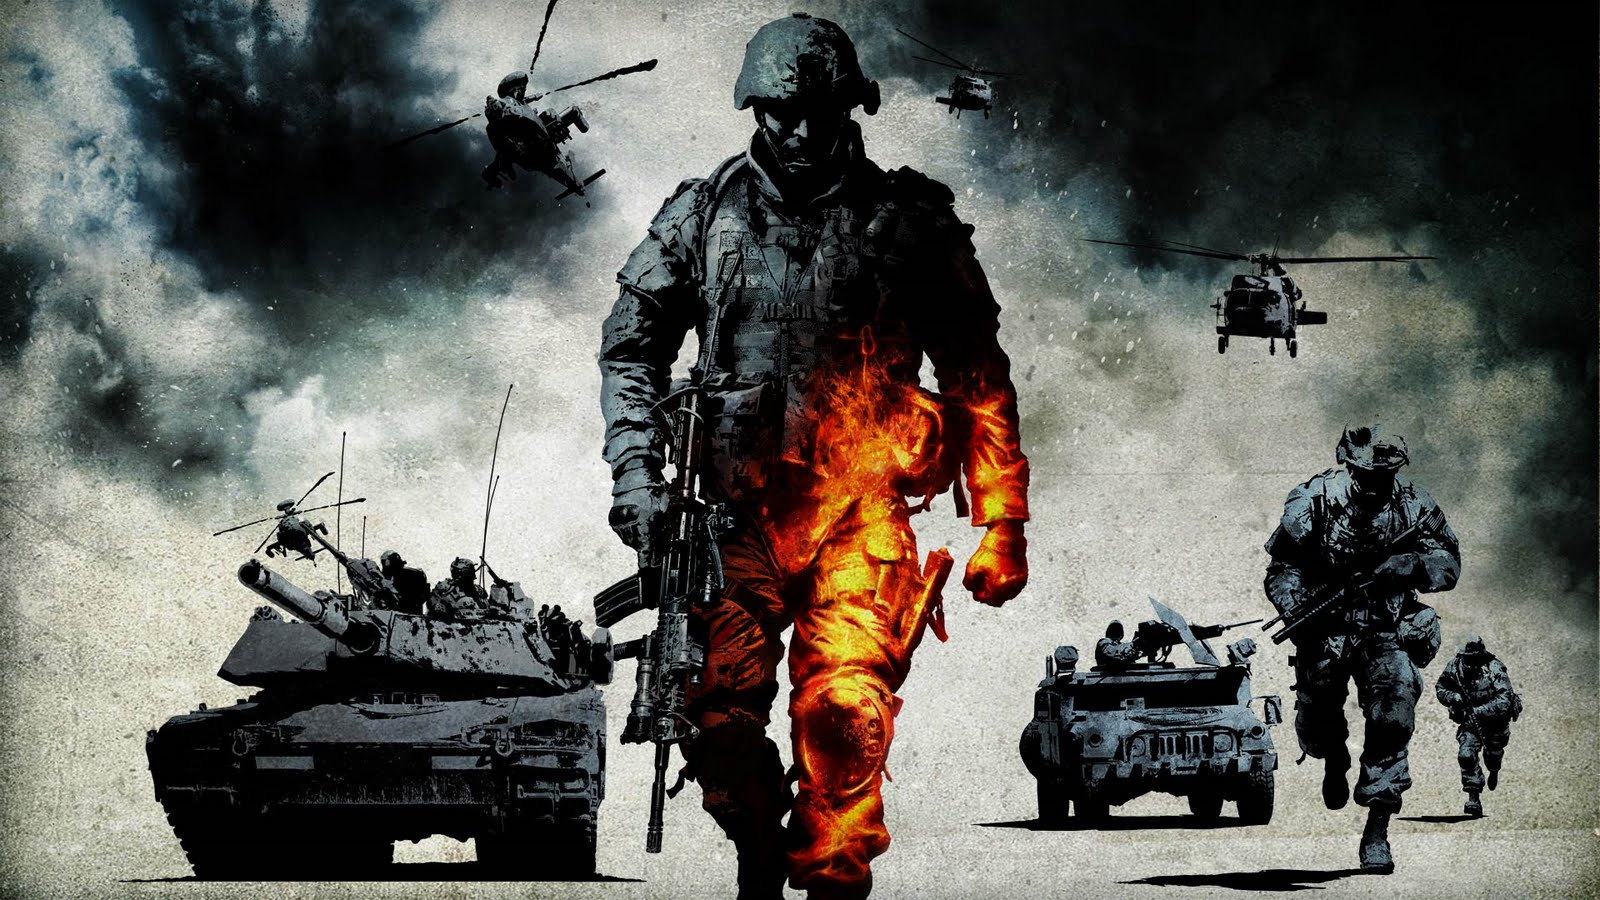 3D Wallpapers HD Games Wallpapers